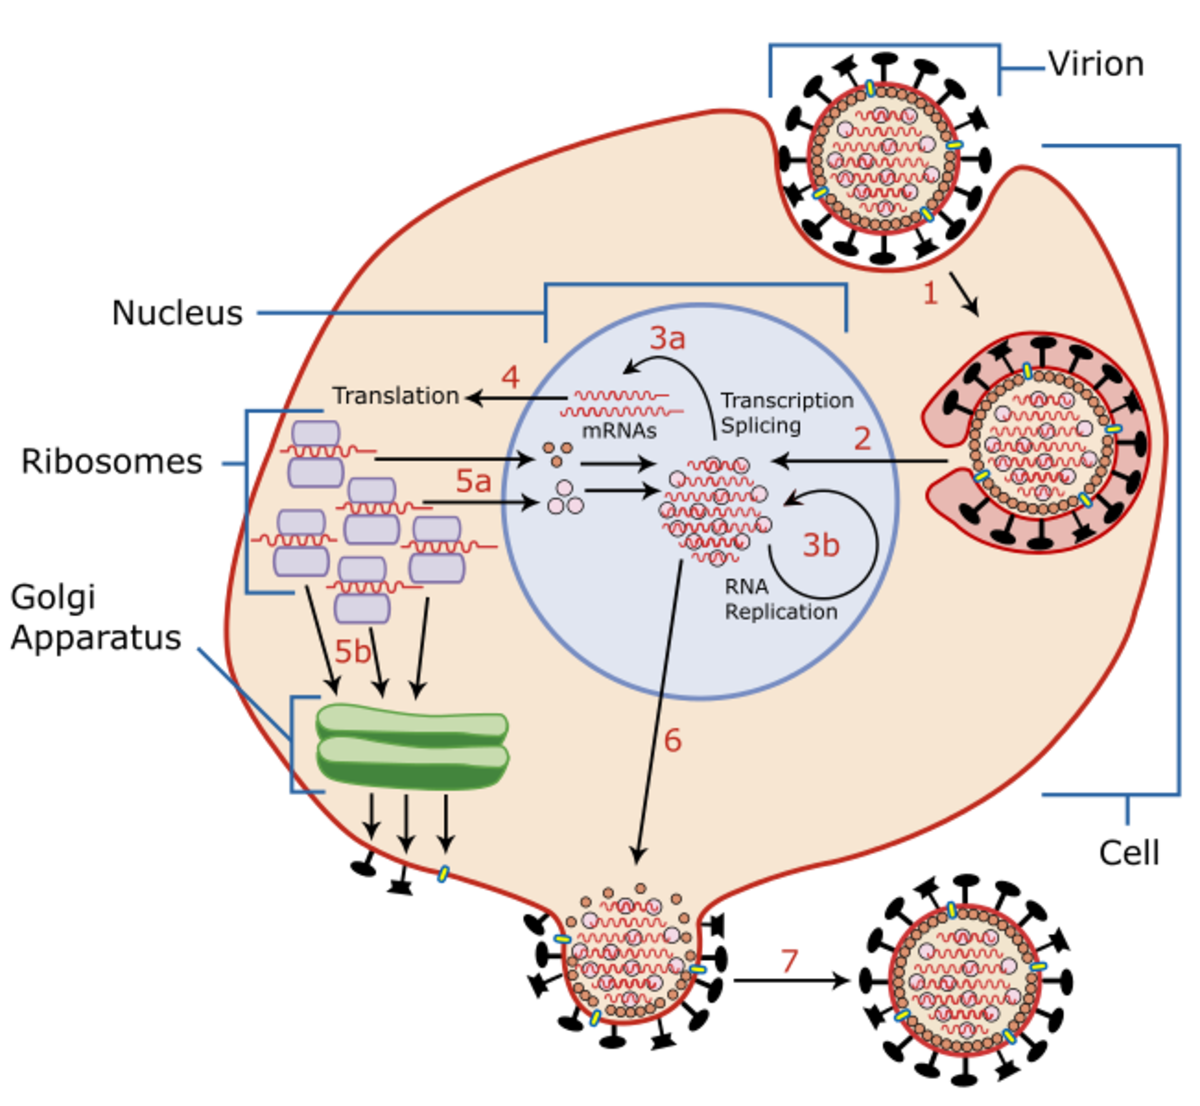 A virion is an individual virus. Its genetic material is either RNA or DNA. Both the dengue and the Zika virus contain RNA.